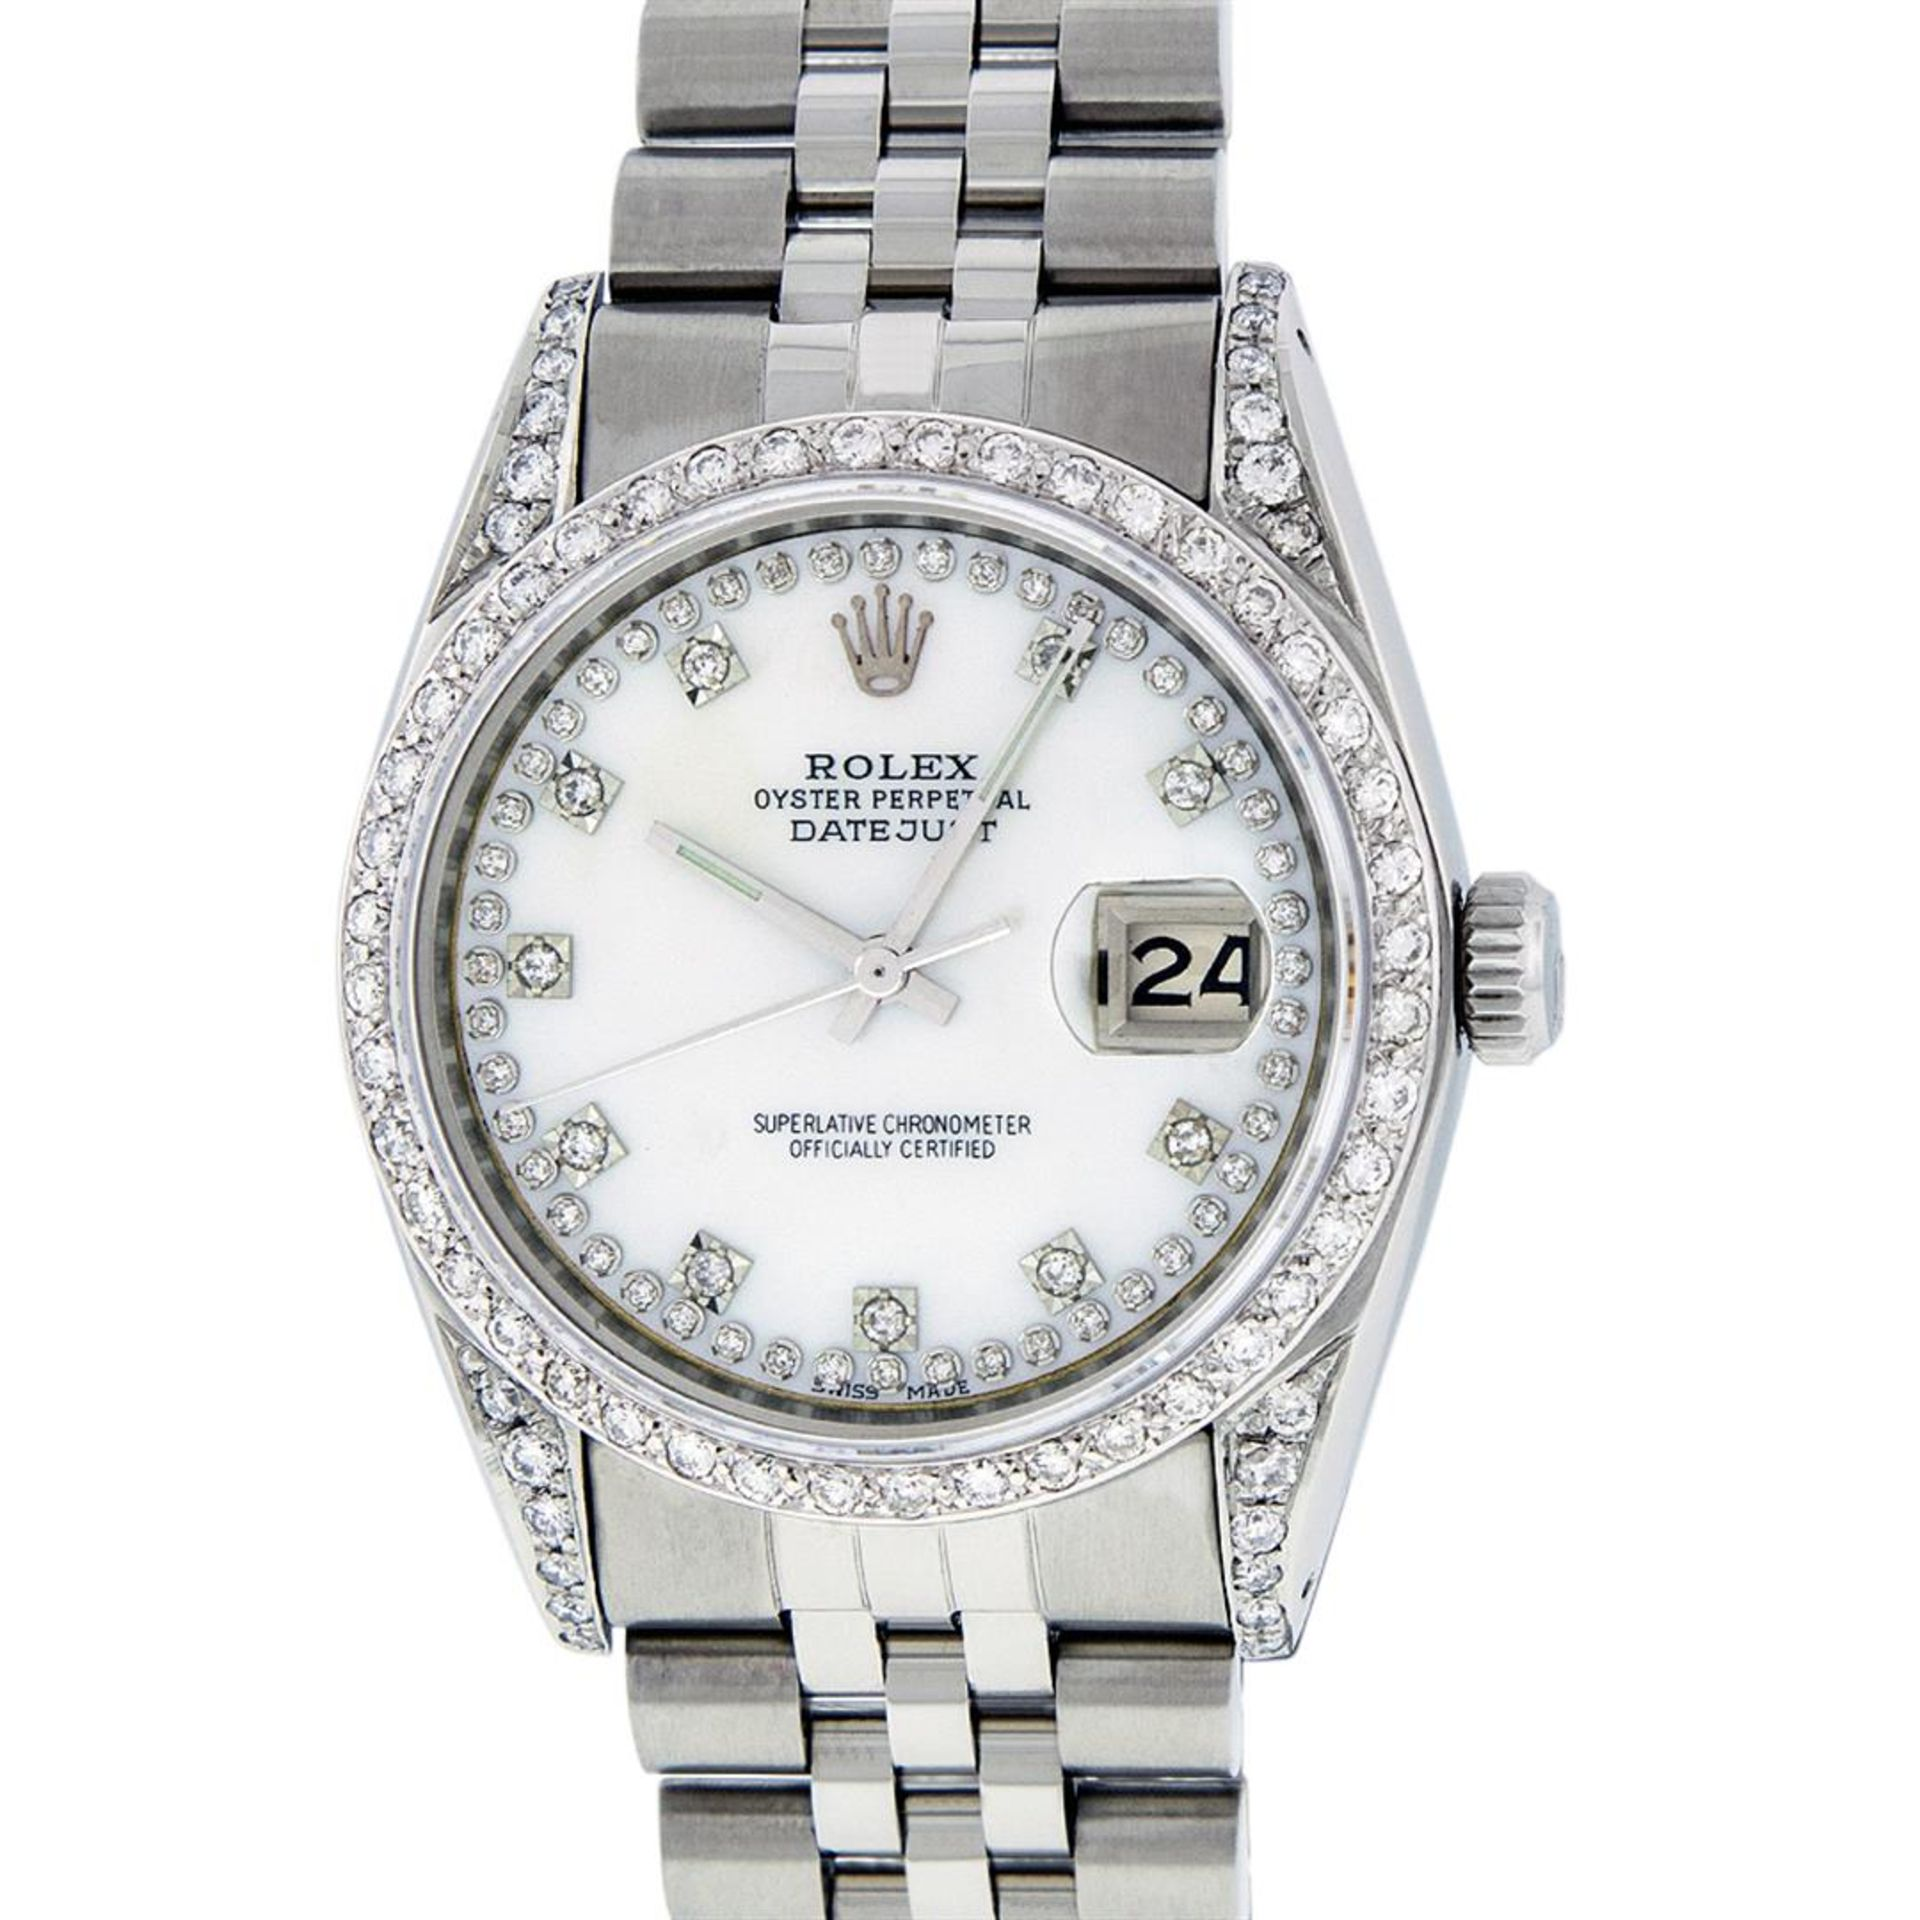 Rolex Mens Stainless Steel Mother Of Pearl Diamond Lugs Datejust Wristwatch - Image 3 of 9